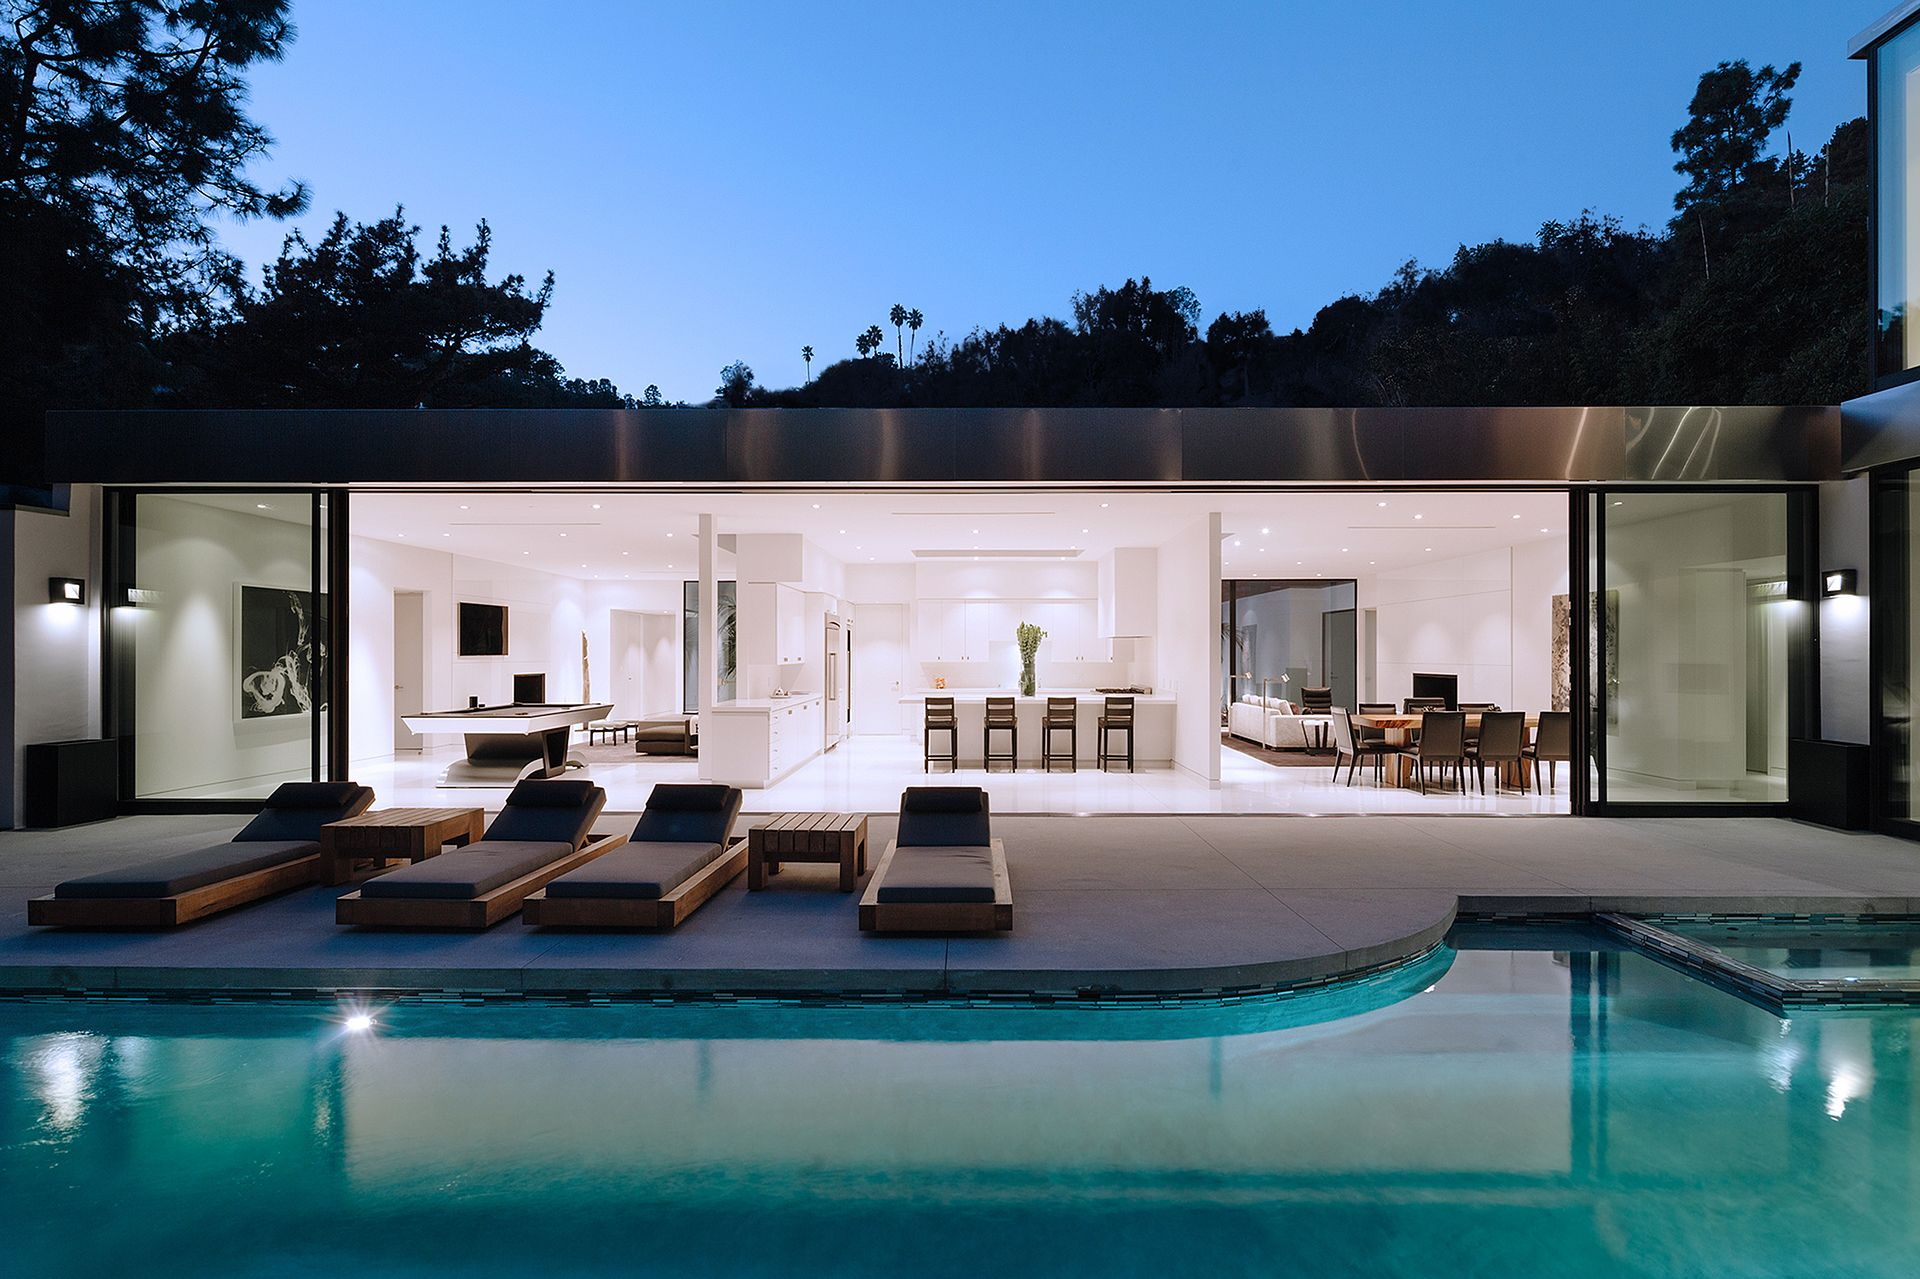 La Mia Casa Group indoor + outdoor living space // belzberg architects group